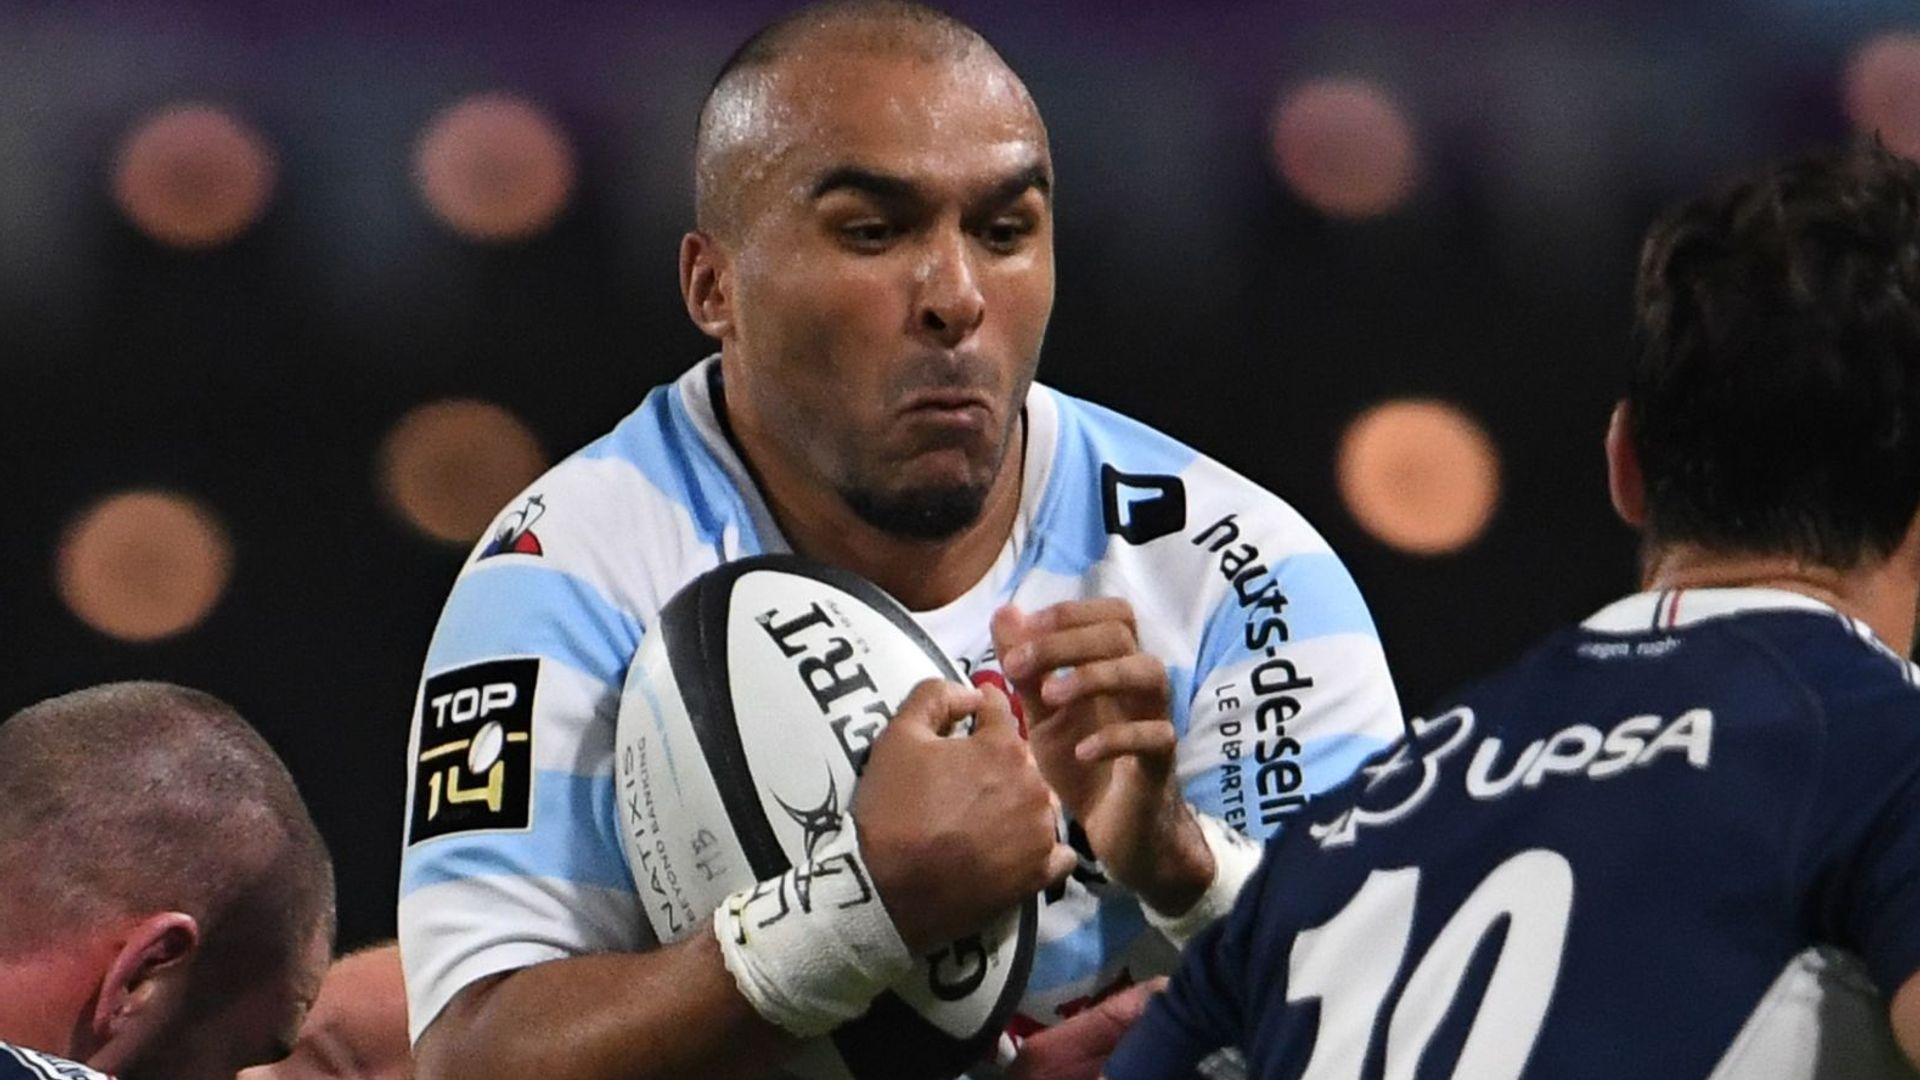 French Top 14 season to be abandoned